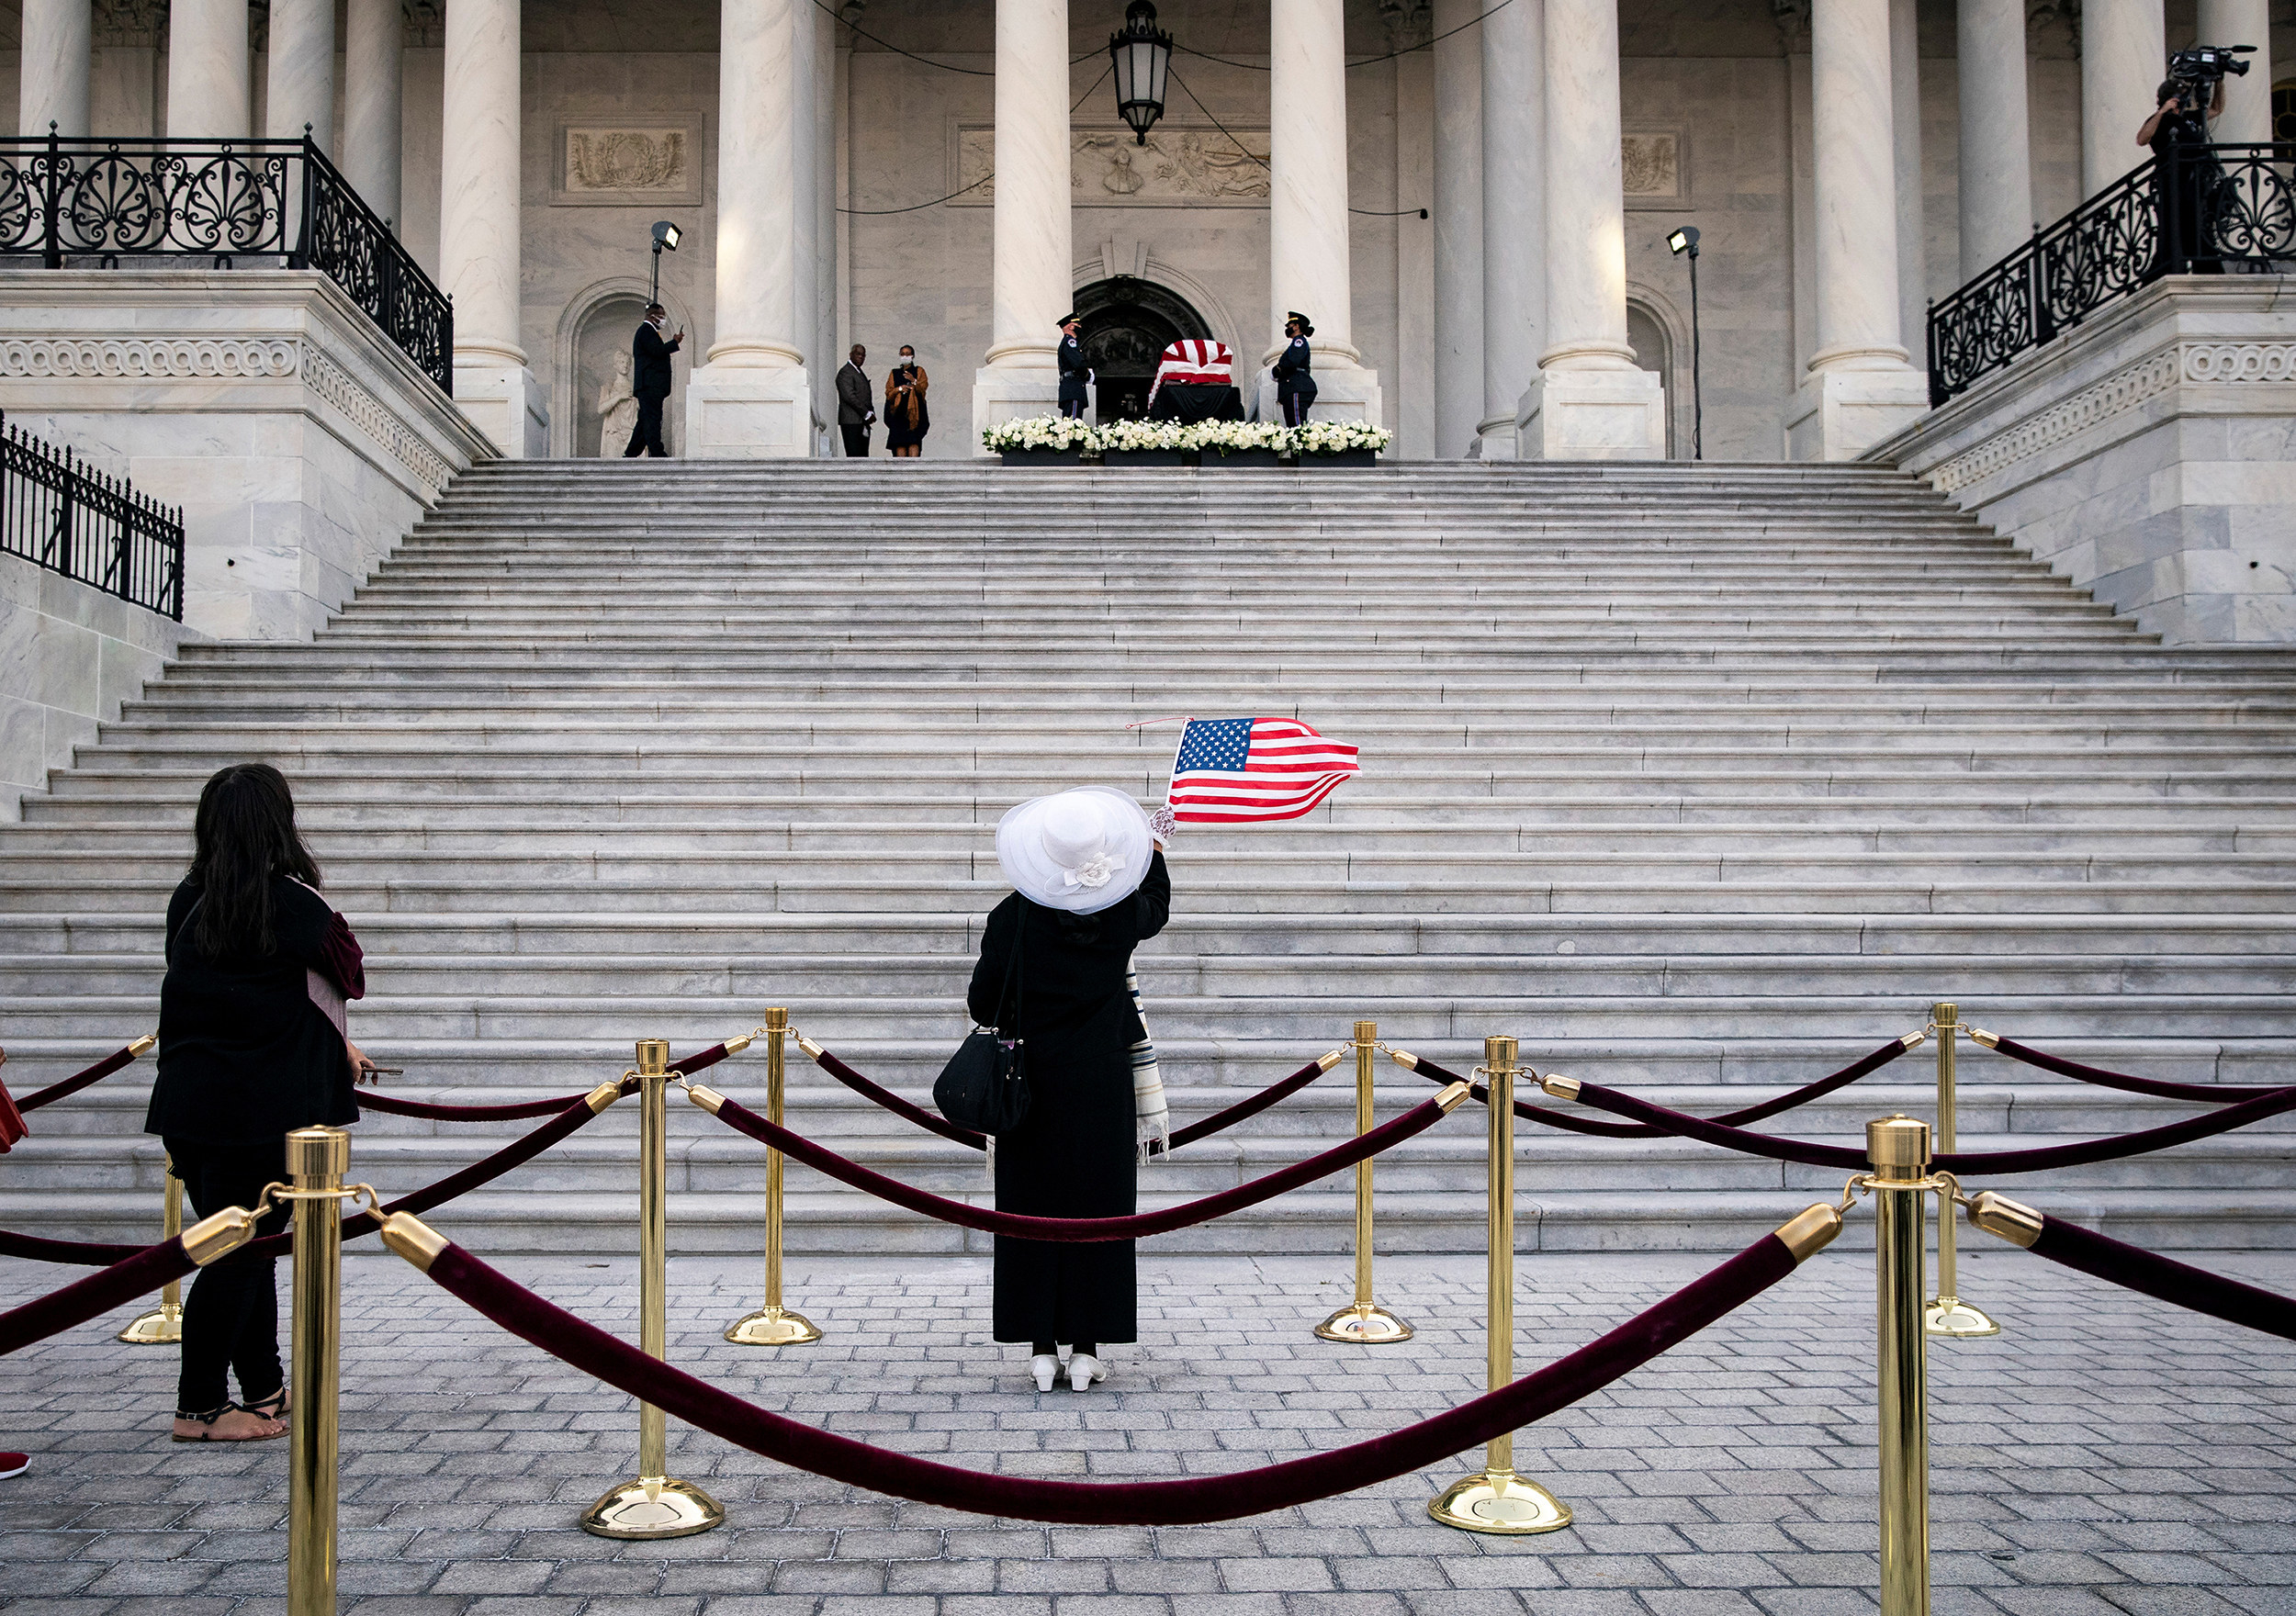 A woman dressed in black, with a white hat and white shoes, raises a US flag at the steps of the Capitol, looking up at John Lewis's flag-draped casket at the top of the stairs